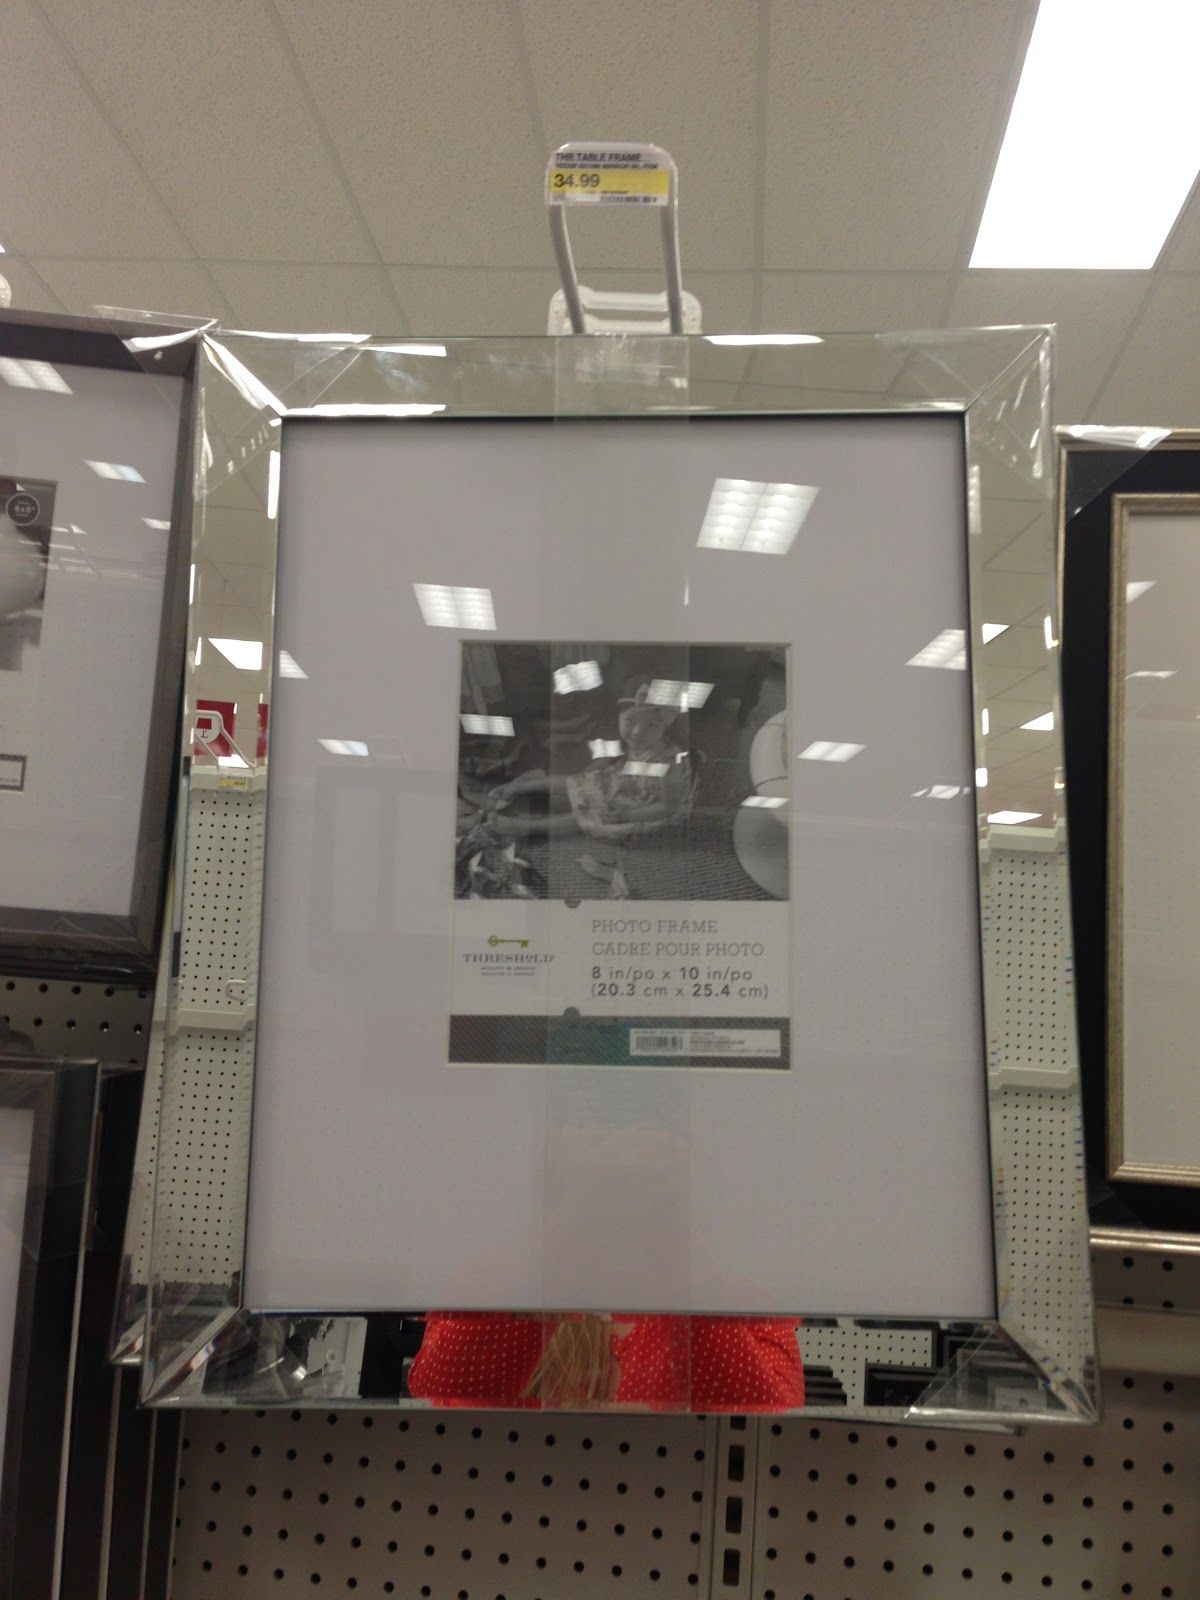 Mirrored Picture Frame From Target Cluster 6 Or 8 On A Black Wall